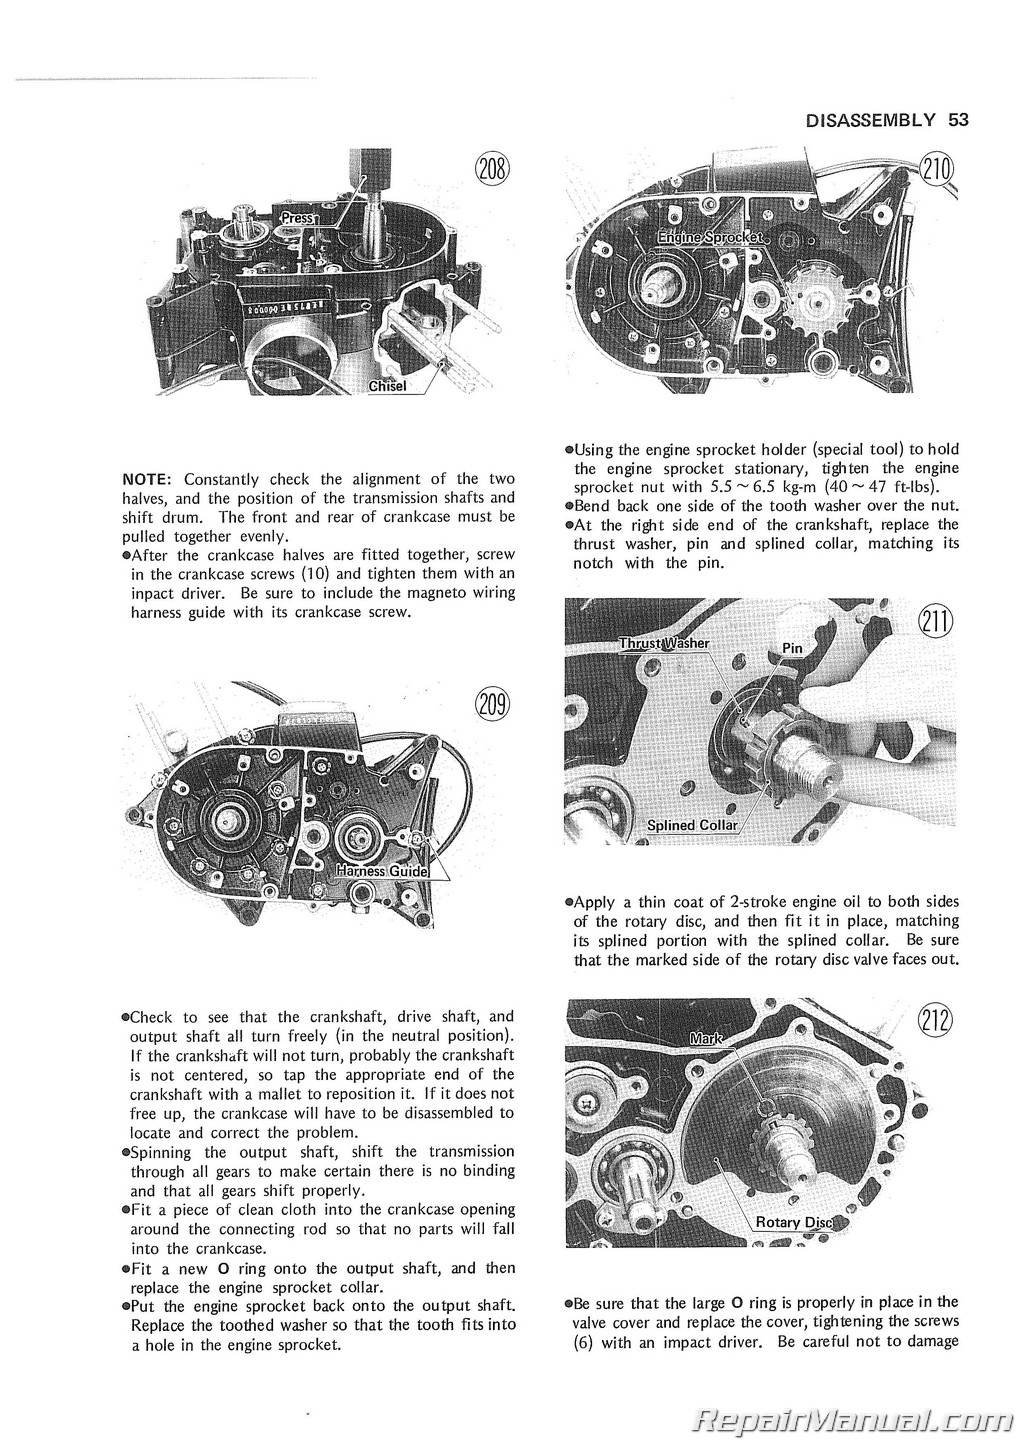 ke175 motorcycle service manual 1976 kawasaki ke175b1. Black Bedroom Furniture Sets. Home Design Ideas